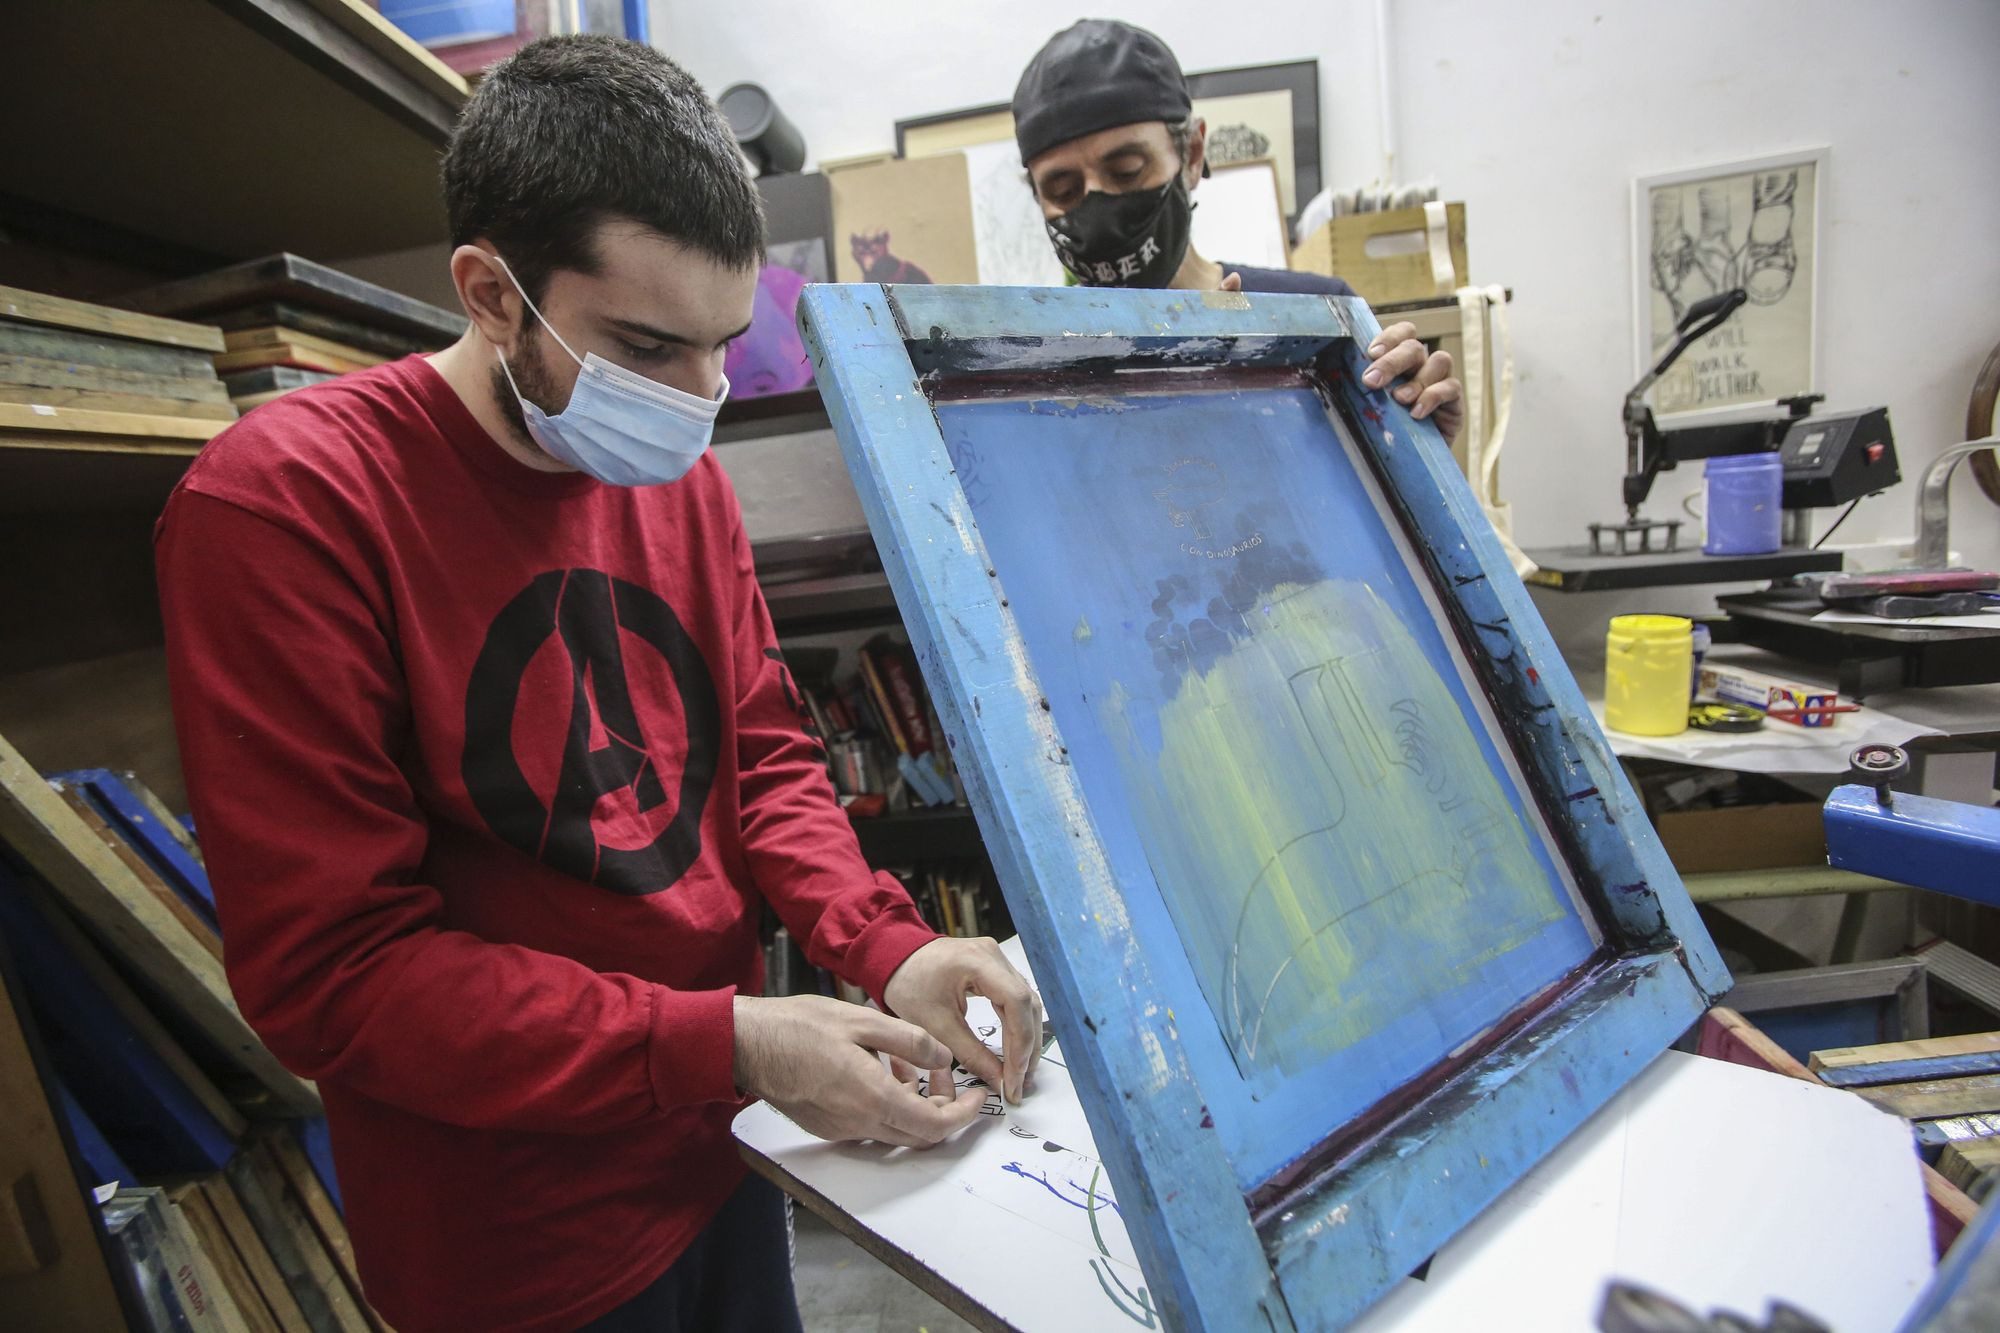 A graphic school in Alicante designs a line of T-shirts with the animal illustrations of Gonzalo, a young man with autism